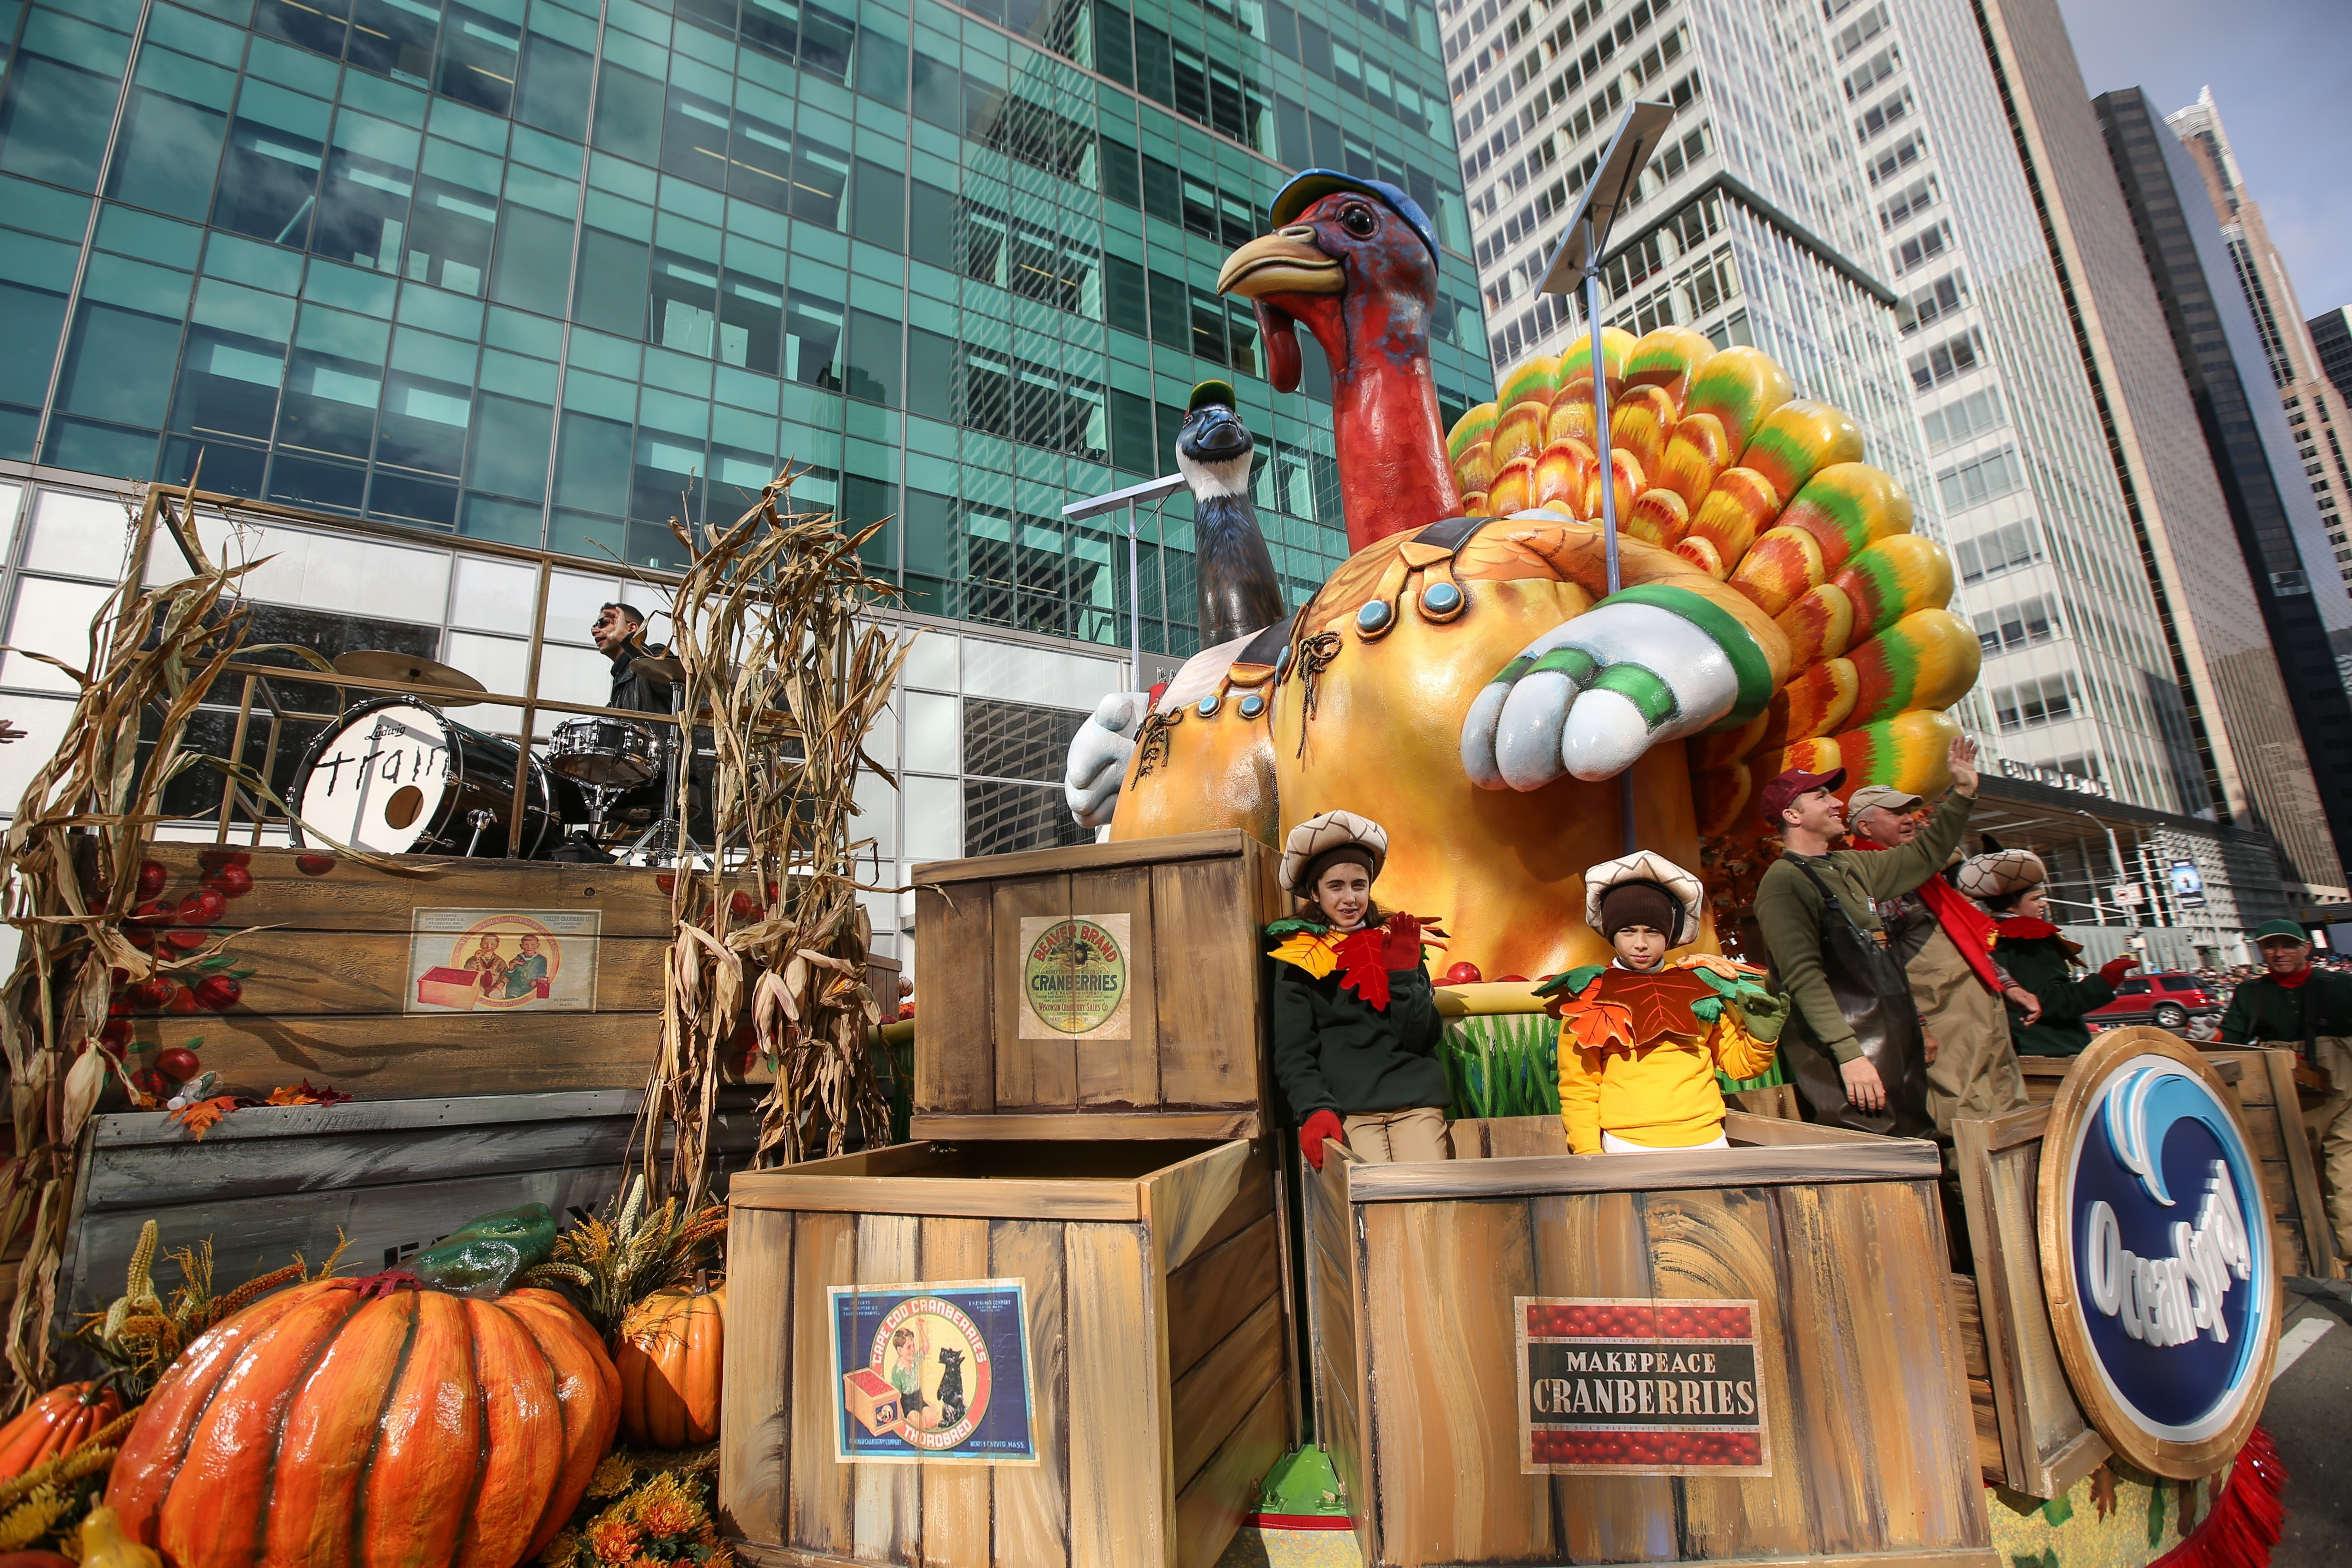 The 89th Annual Macy's Thanksgiving Day Parade in New York, on Nov. 26, 2015.